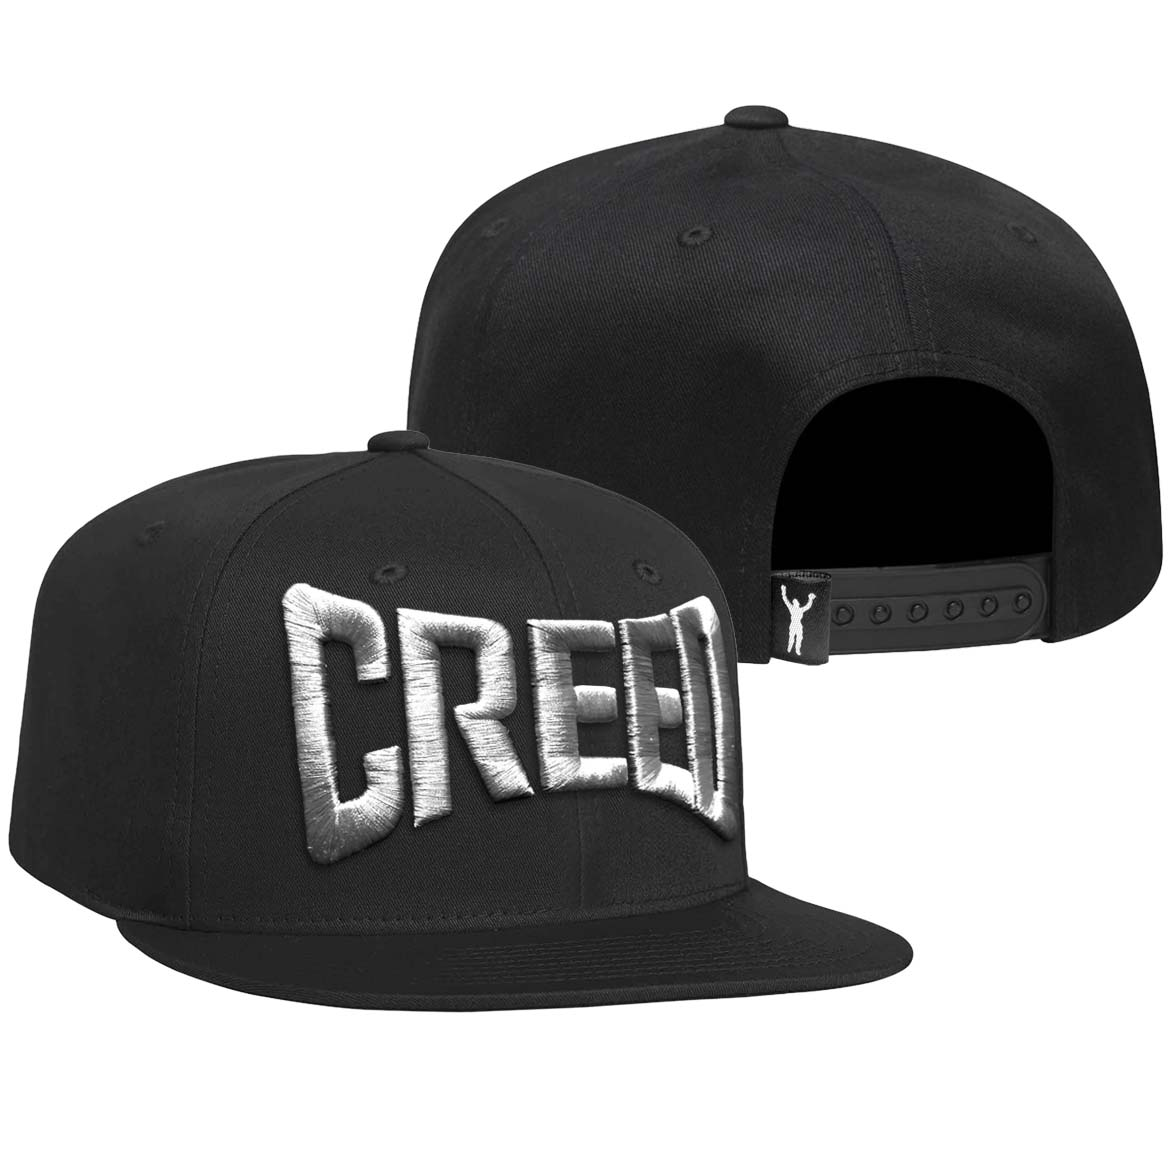 CREED Snapback Hat